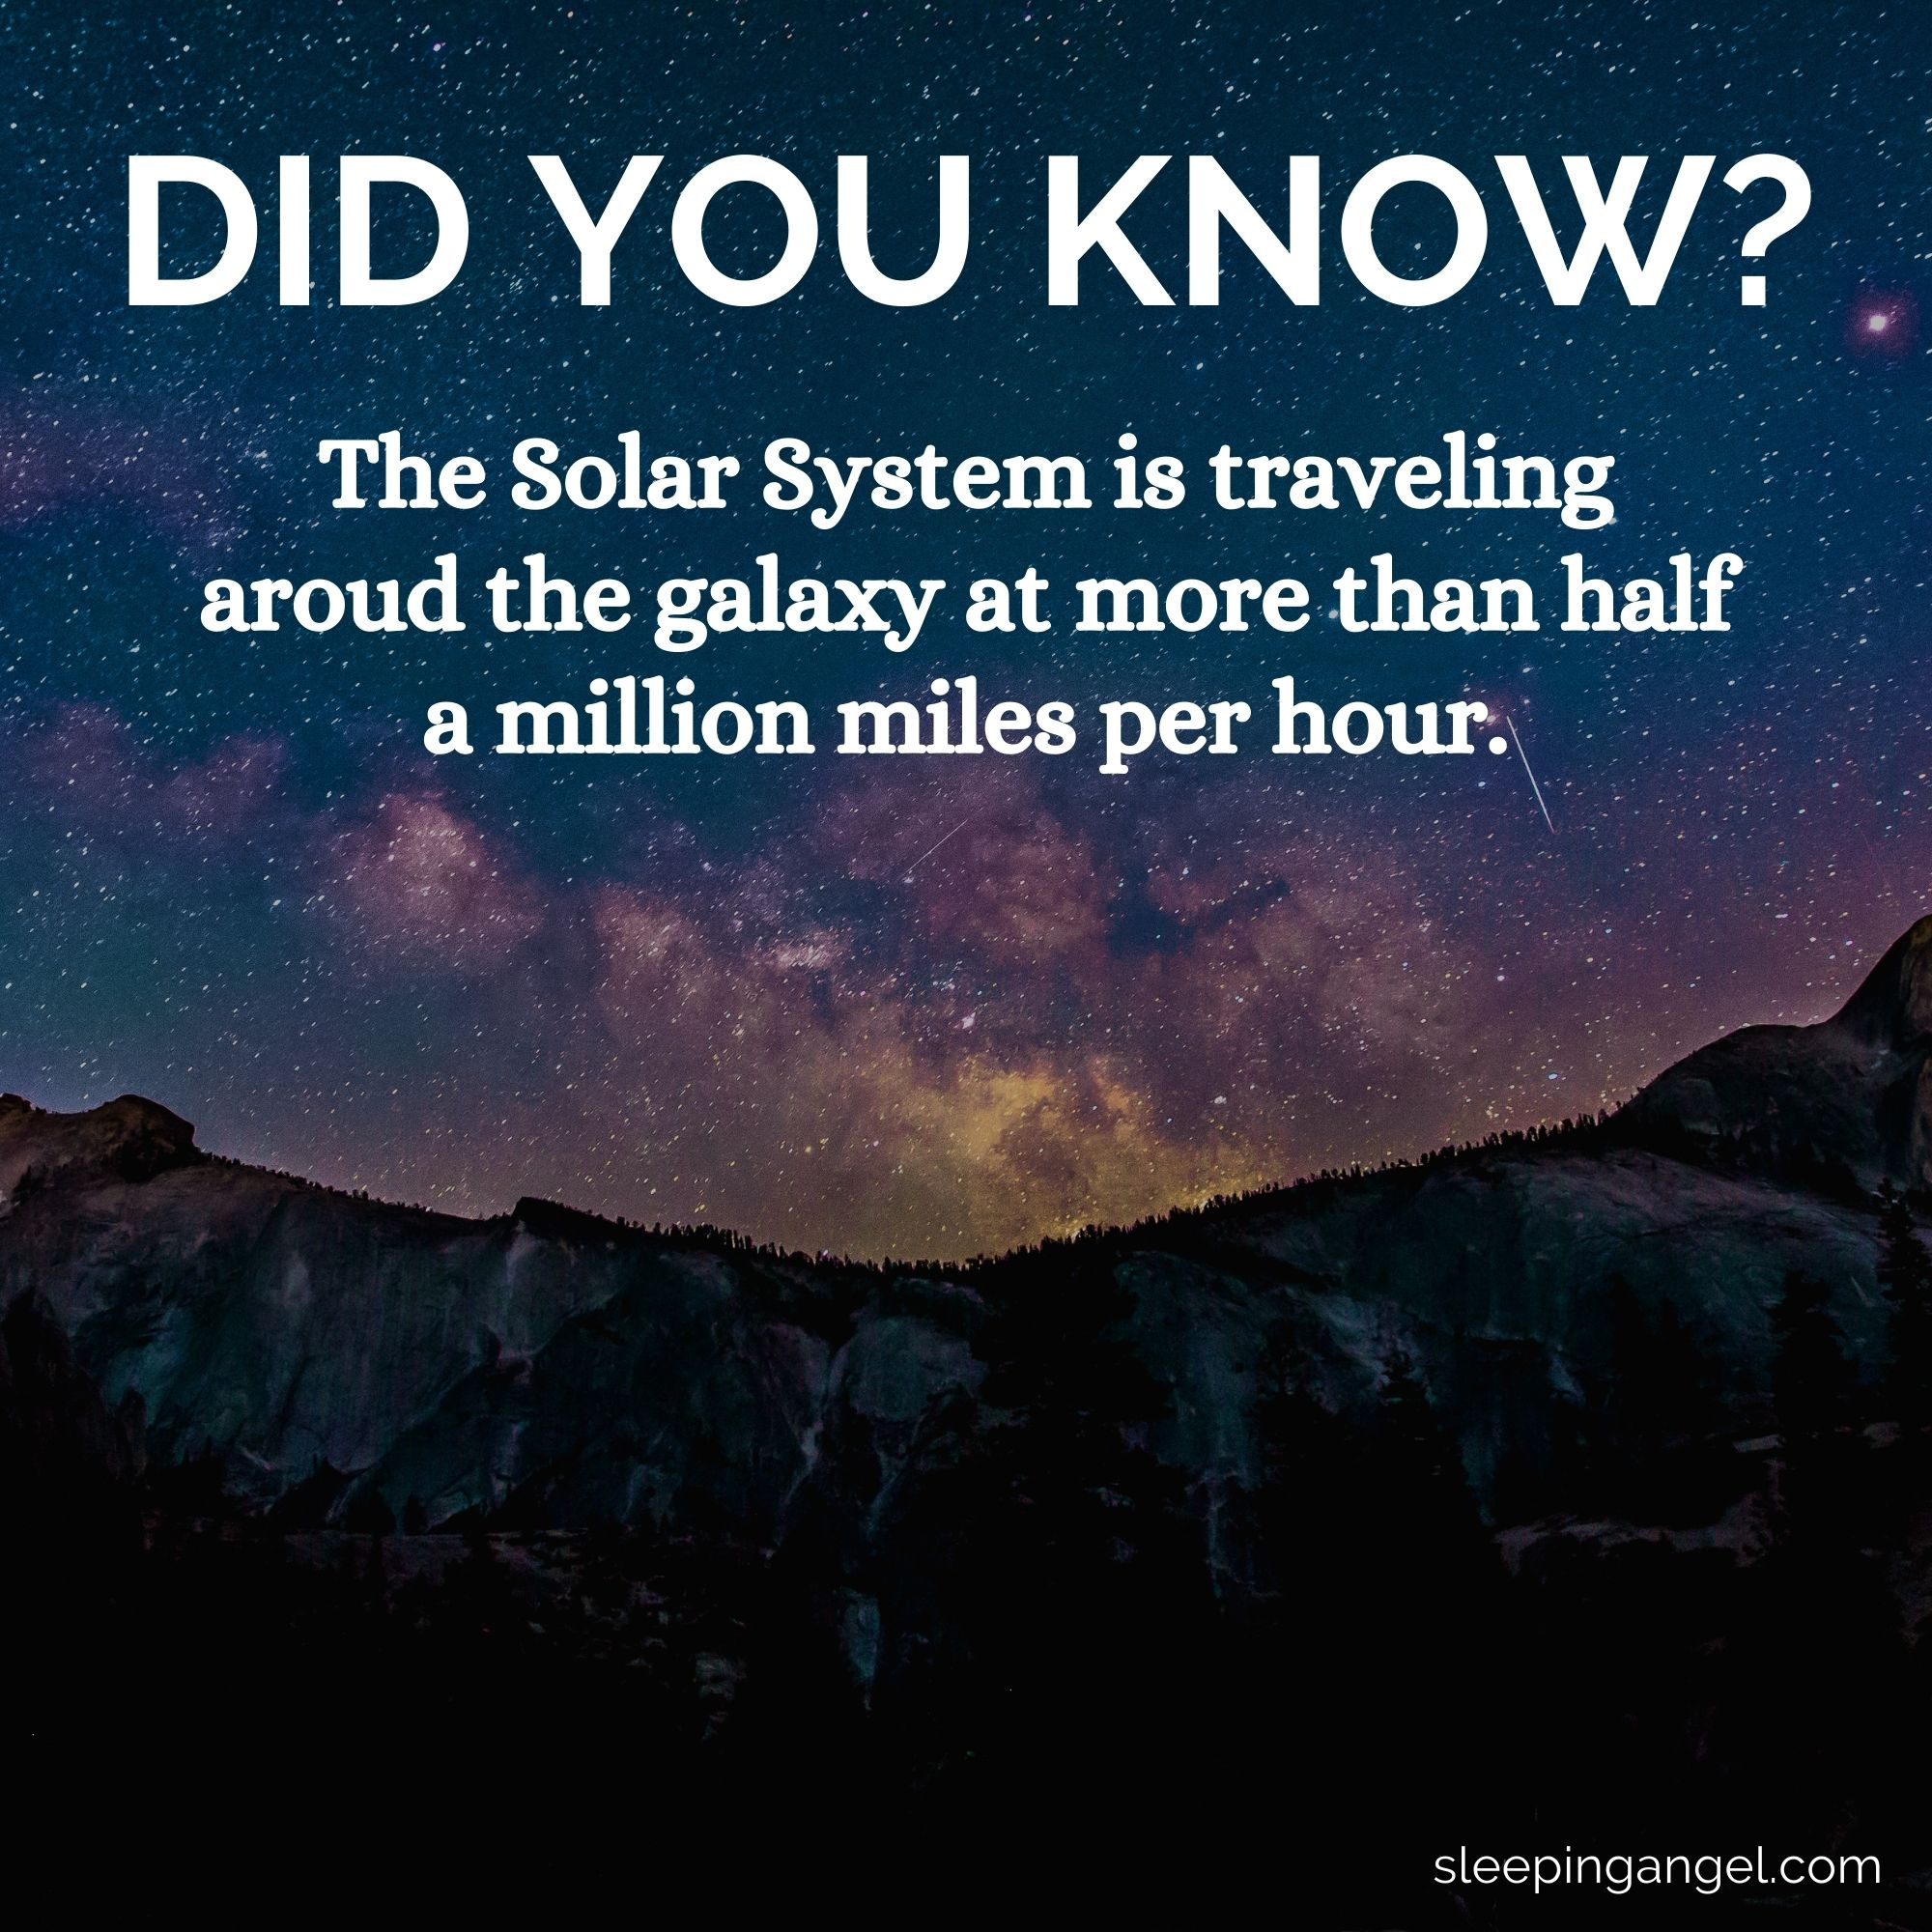 Did You Know? The Solar System